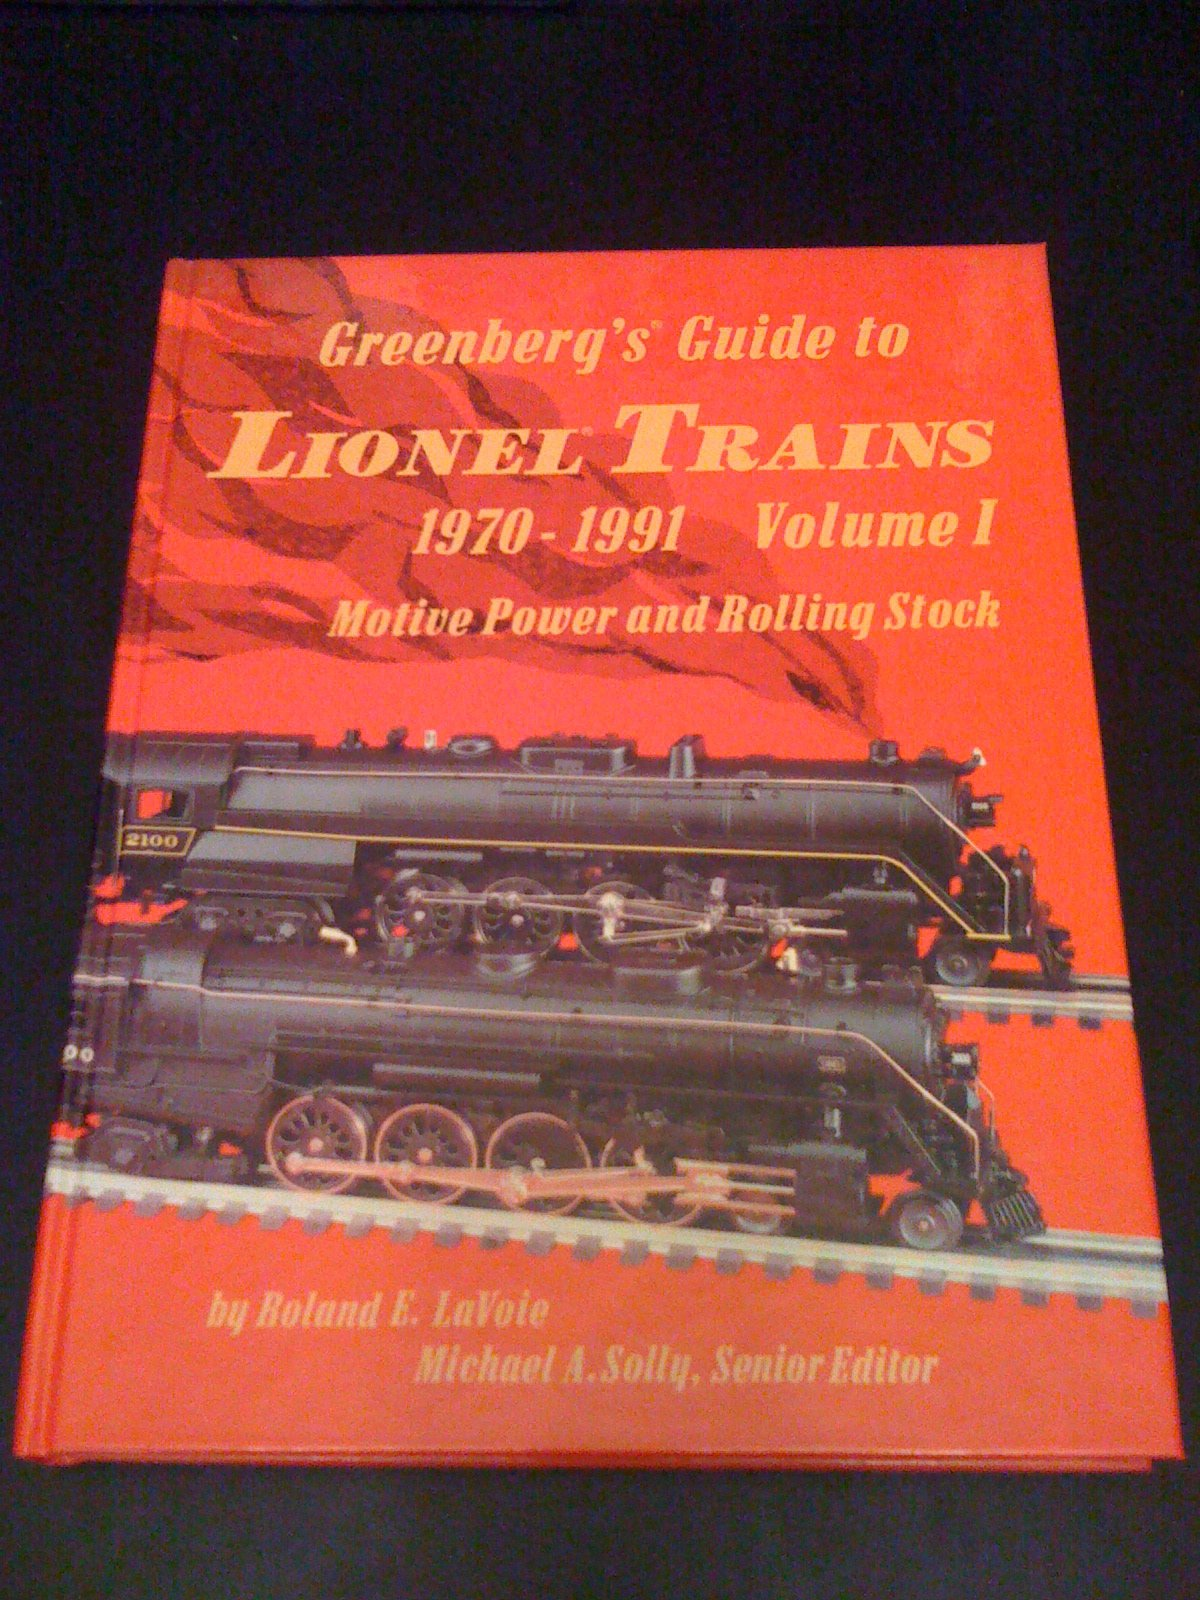 Greenberg's Guide to Lionel Trains: 1970-1991 : Motive Power and Rolling Stock